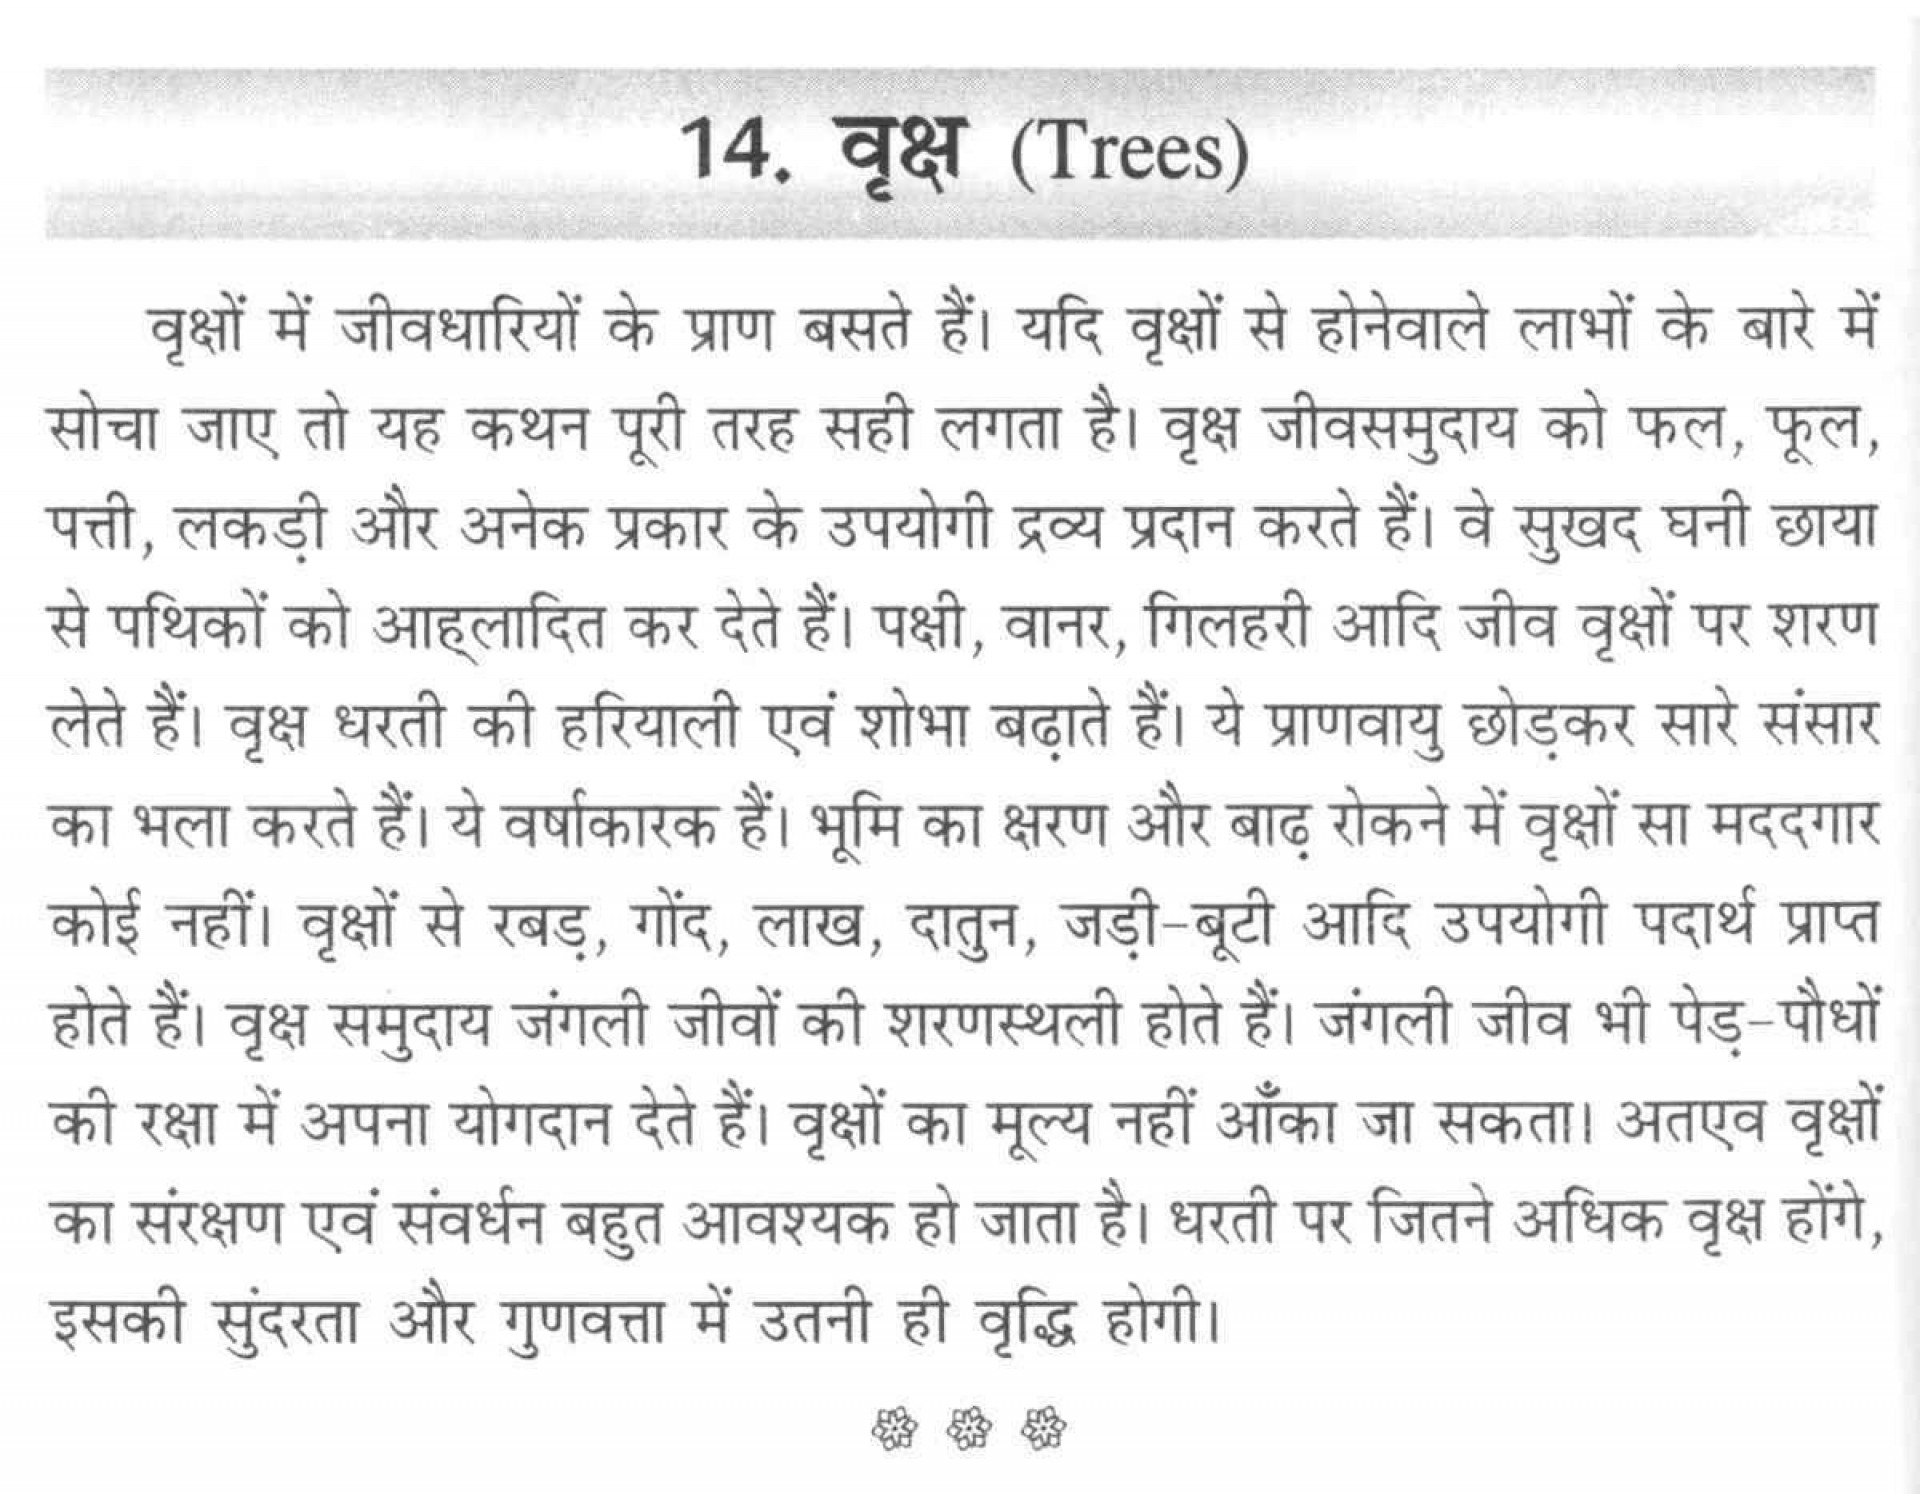 019 Friends Essay 3385844636 Trees Are Our In Odia Marvelous For Class 2 Introduction My Best Friend Hindi 1920